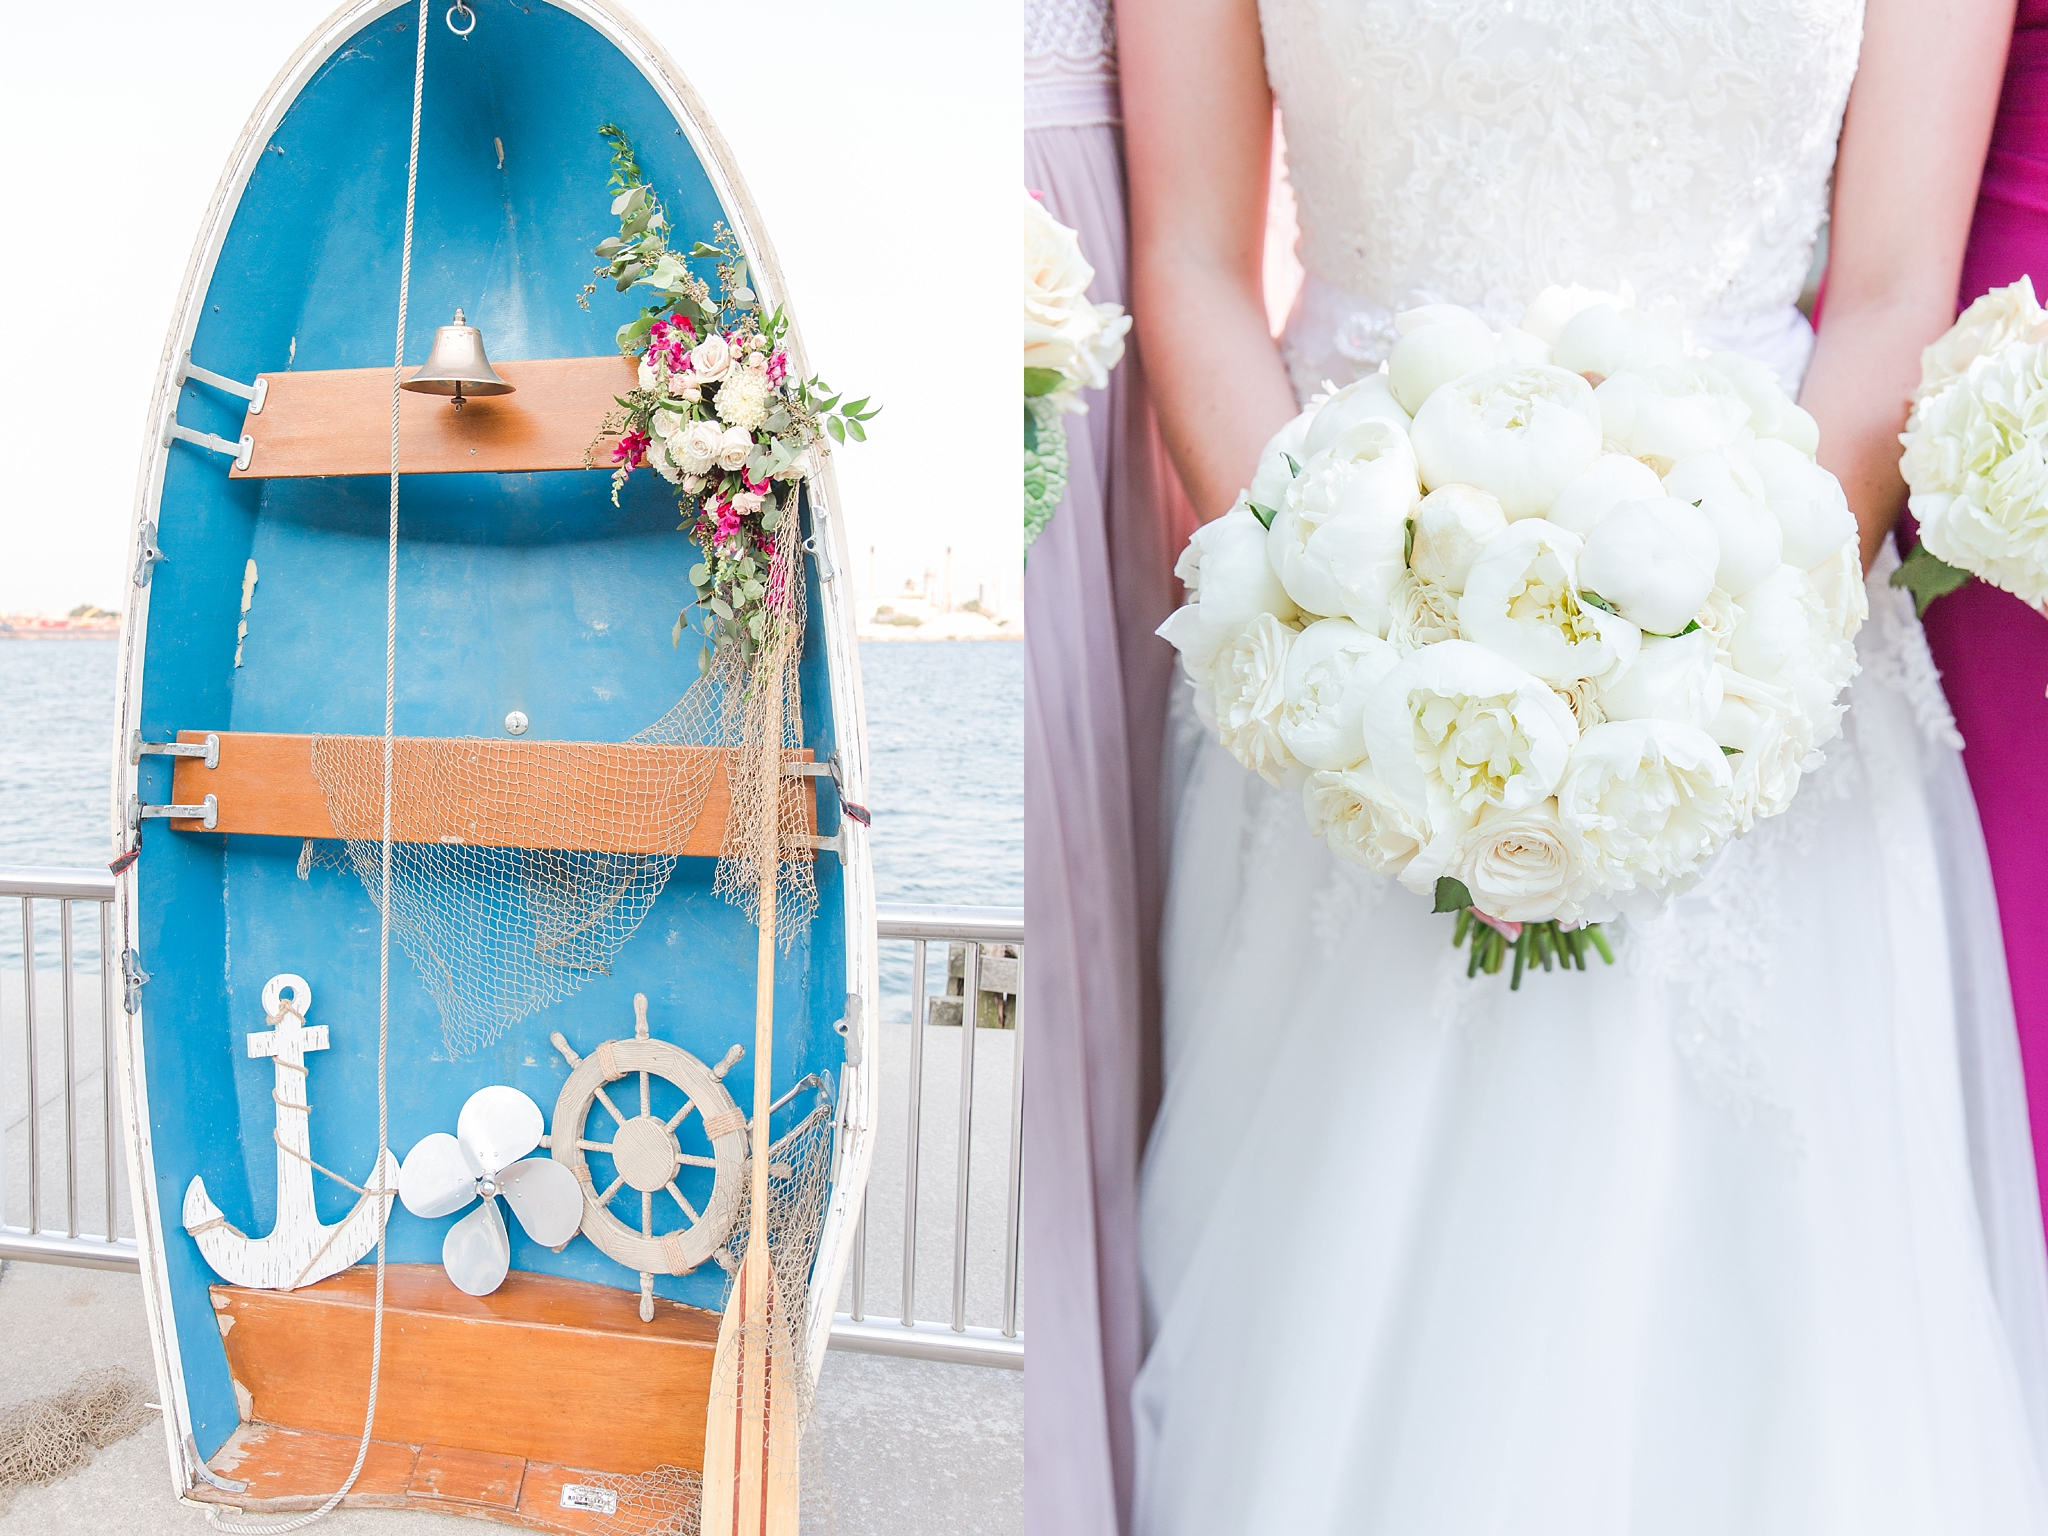 fun-nautical-wedding-photos-at-the-bean-dock-in-downtown-port-huron-michigan-by-courtney-carolyn-photography_0001.jpg